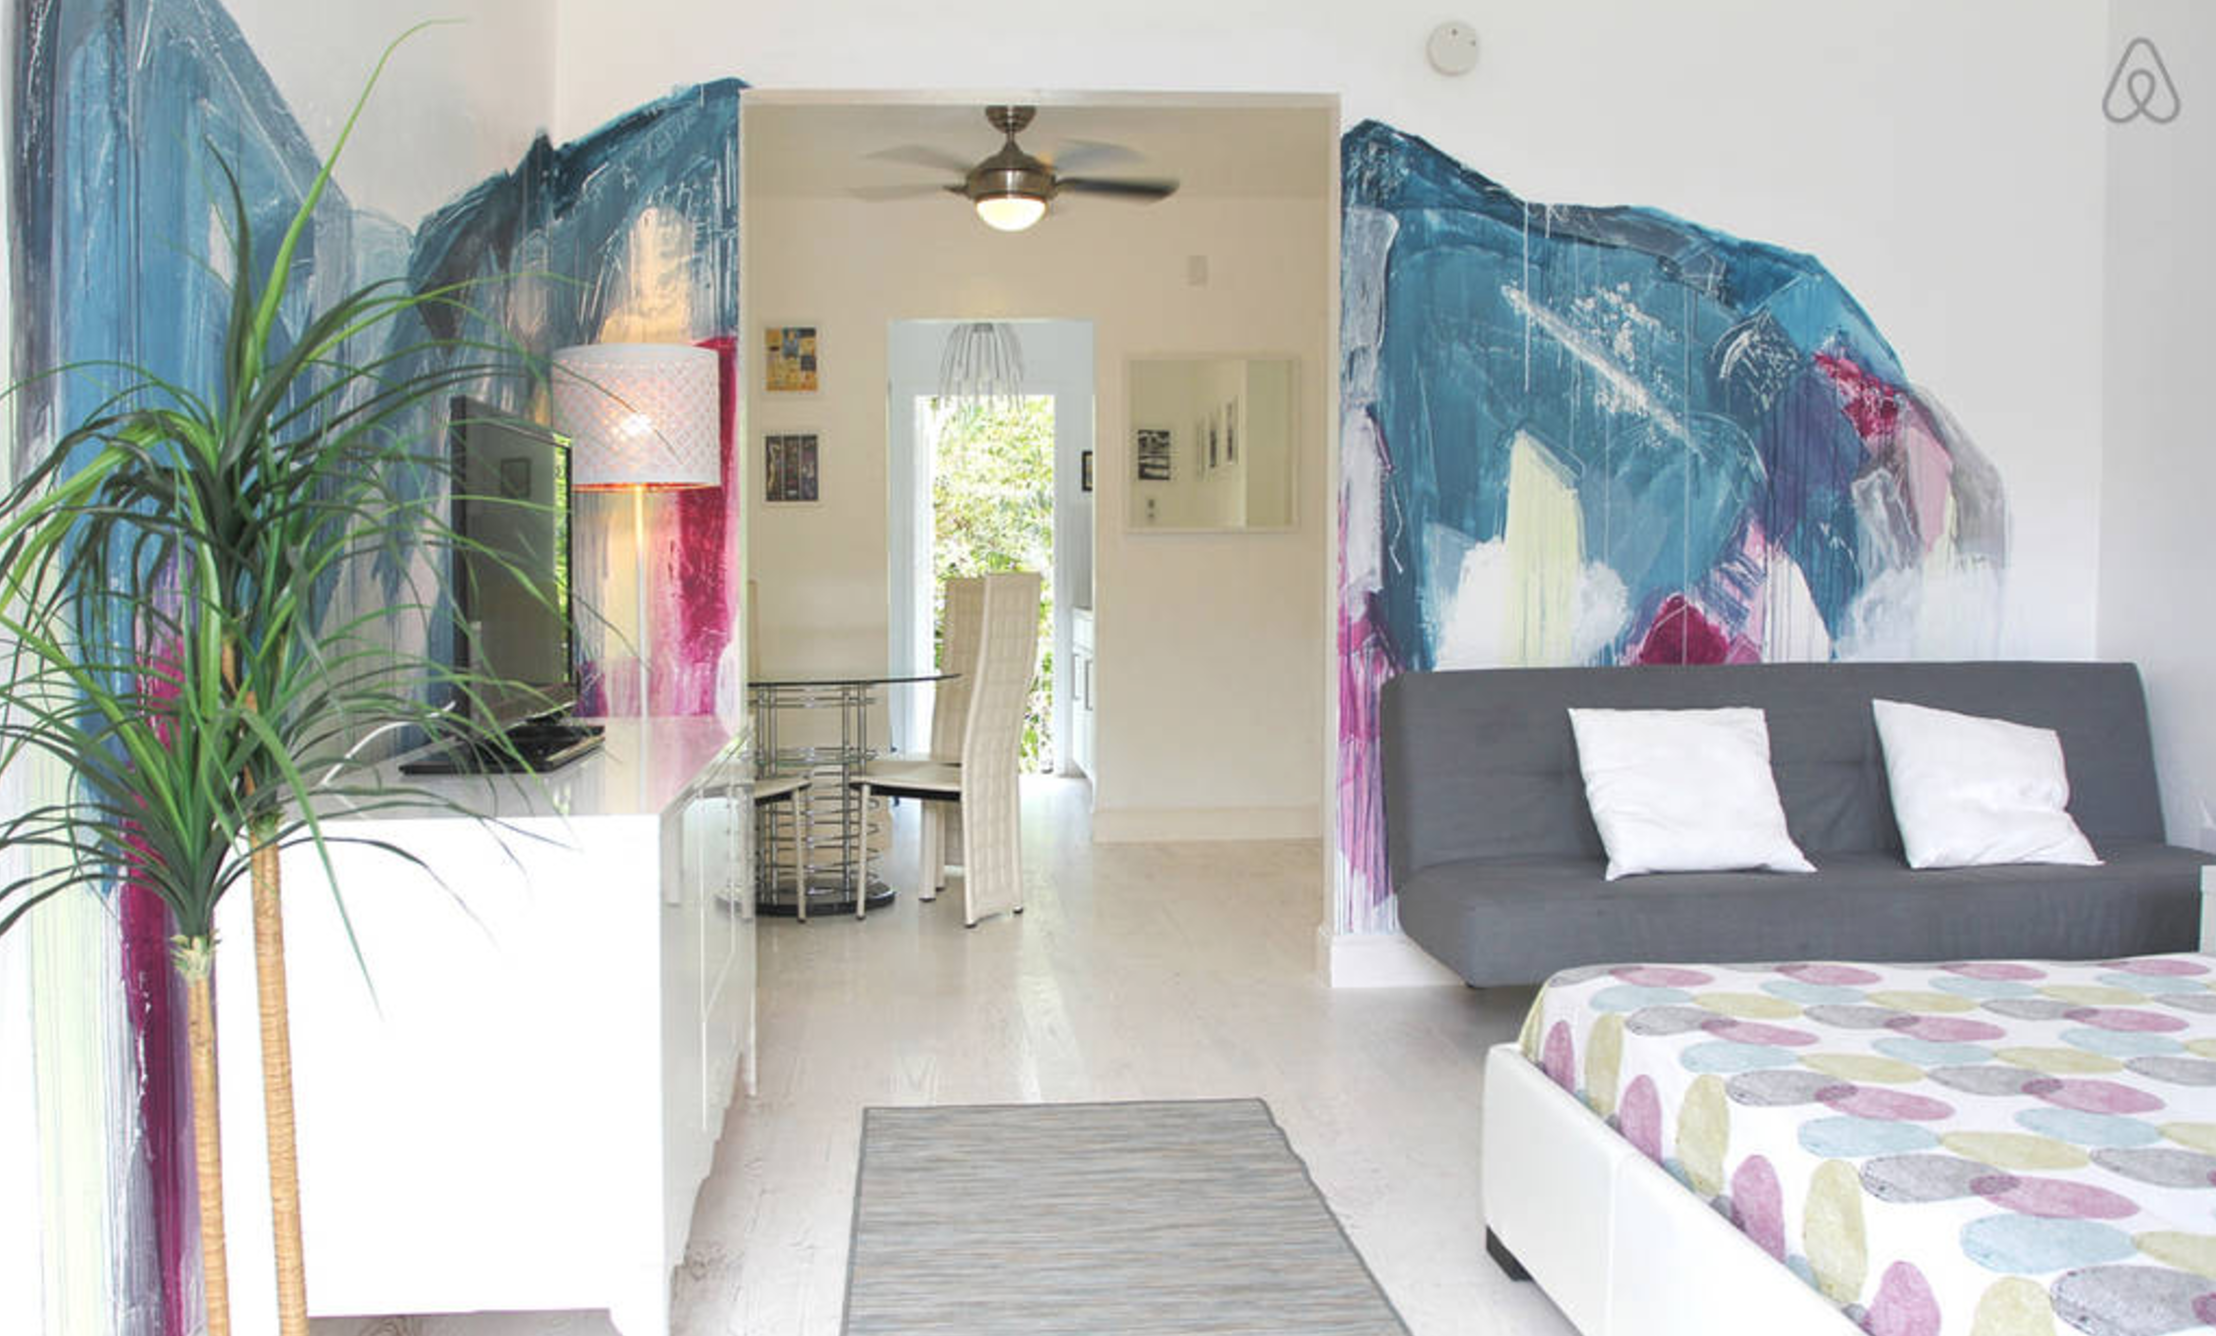 A studio on airbnb in Miami Beach with a wall mural and white modern interiors